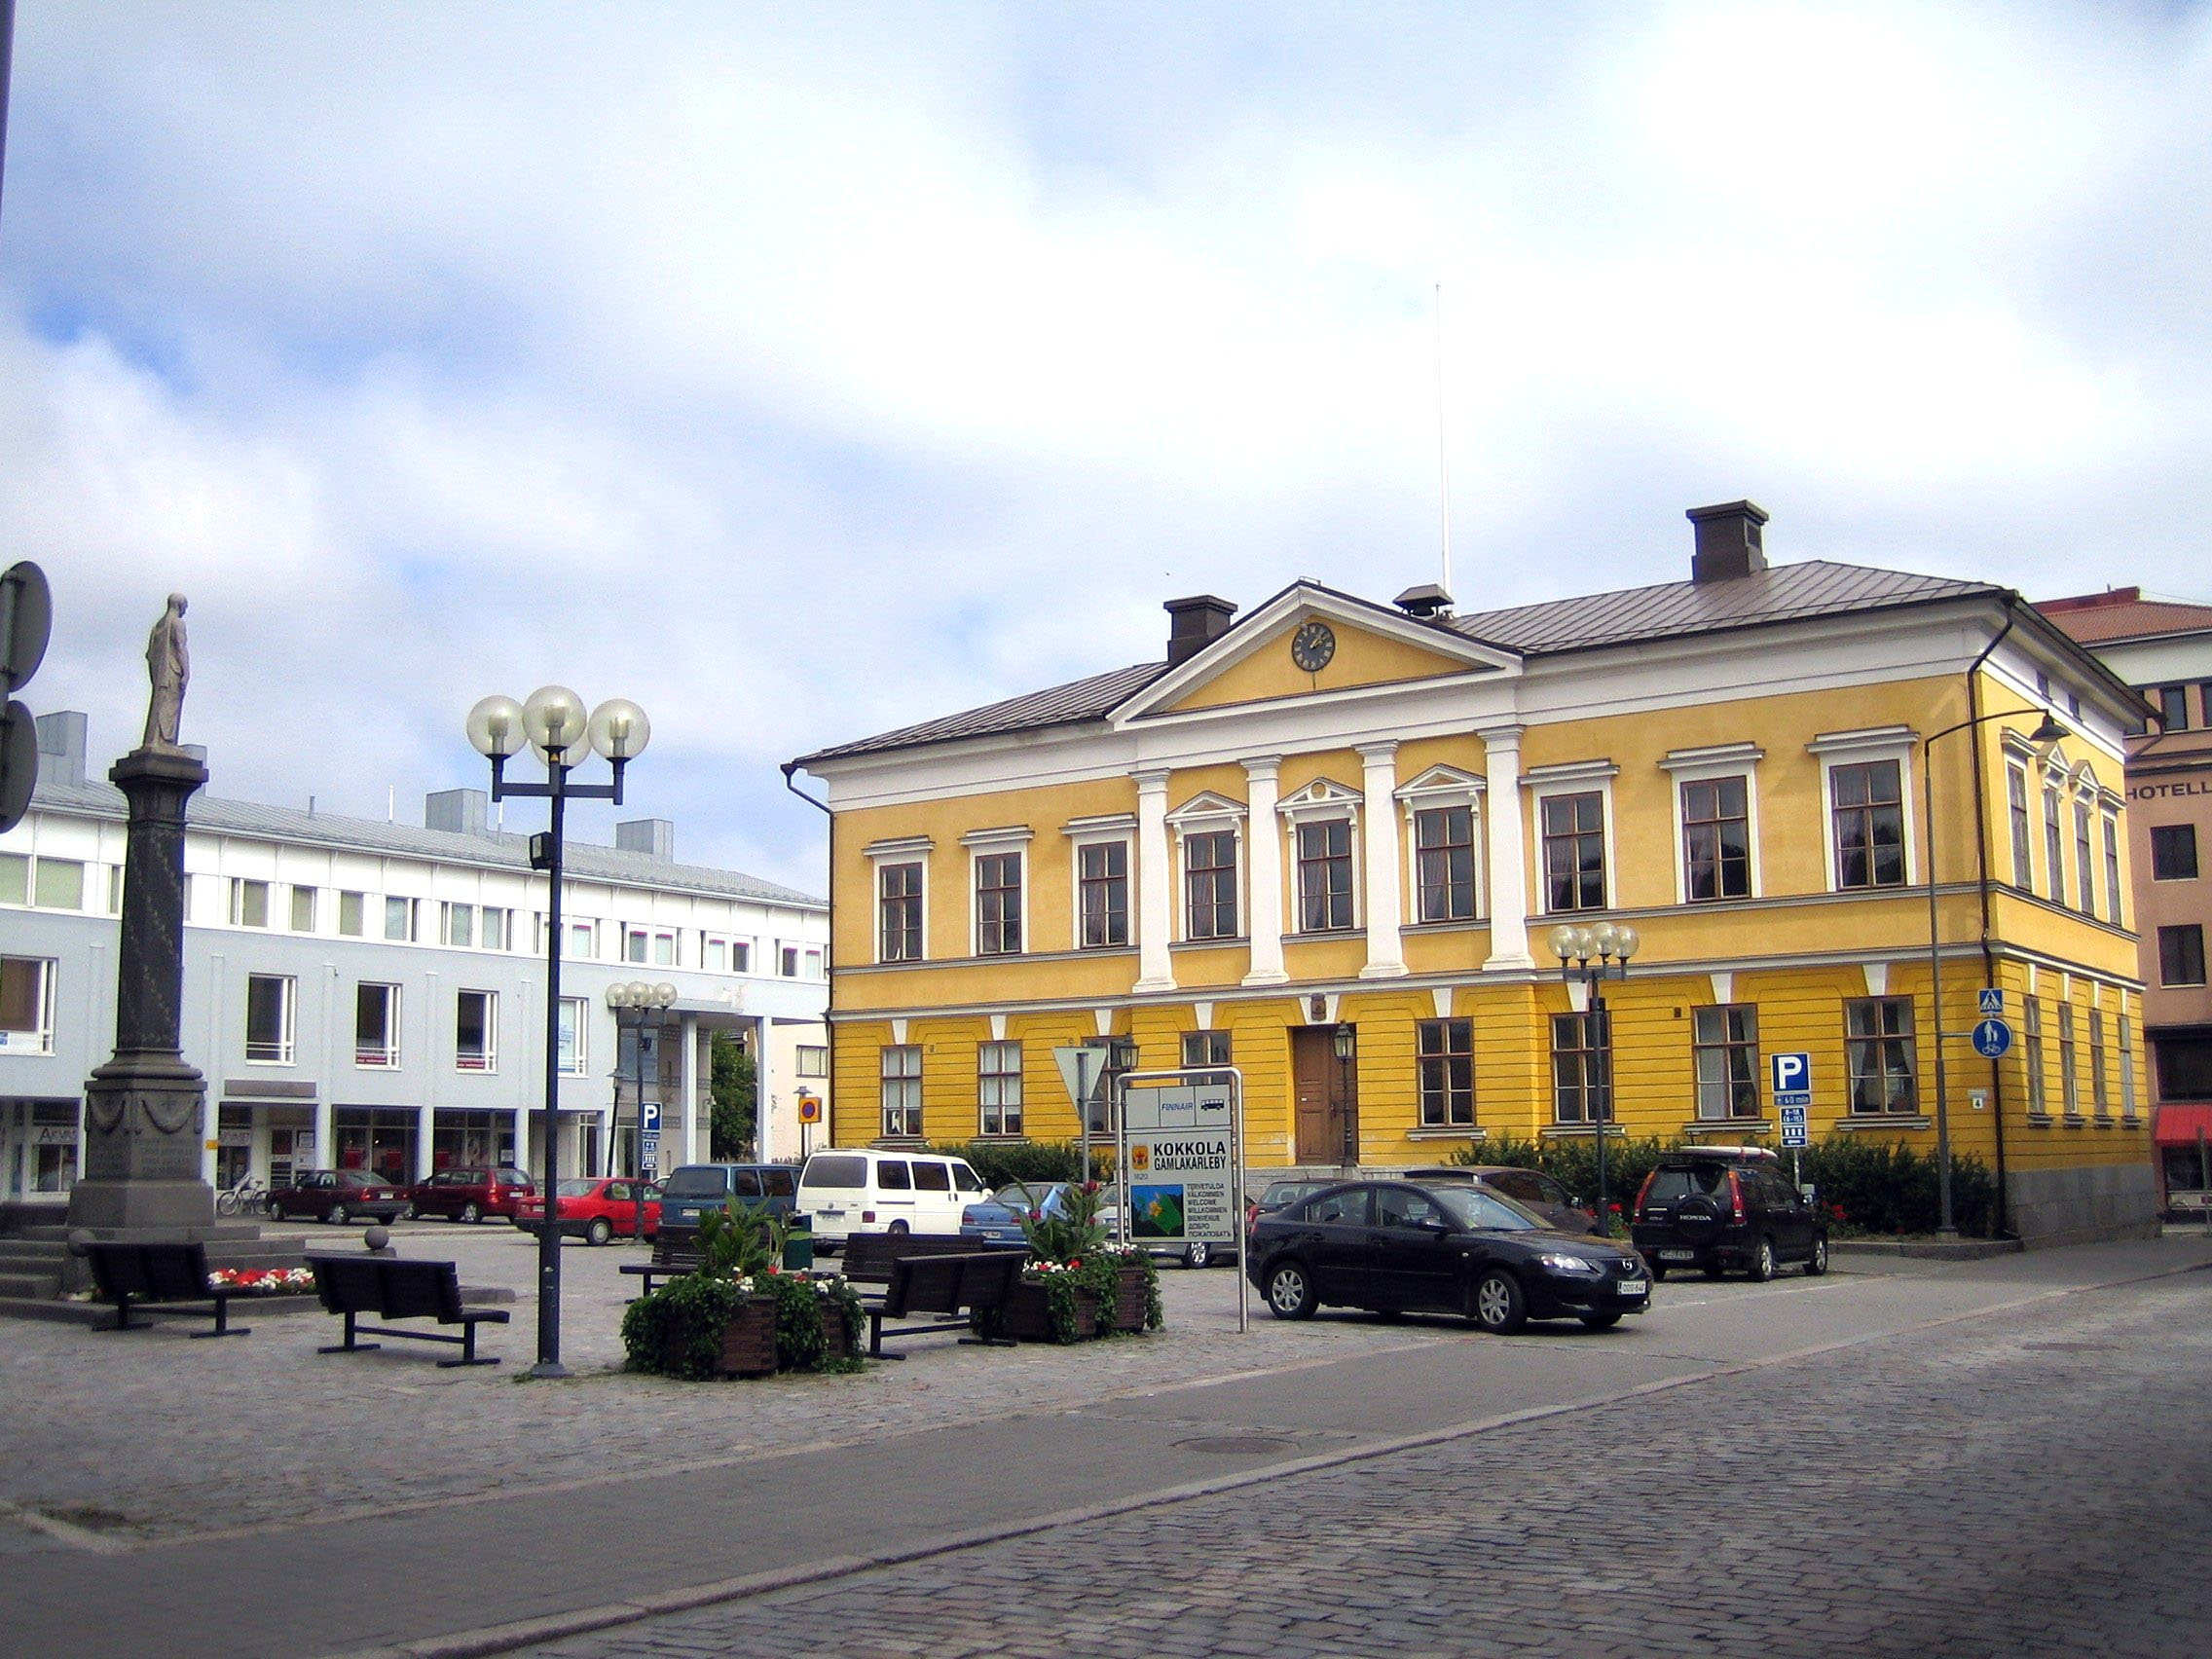 finland yellow building best places to visit in europe